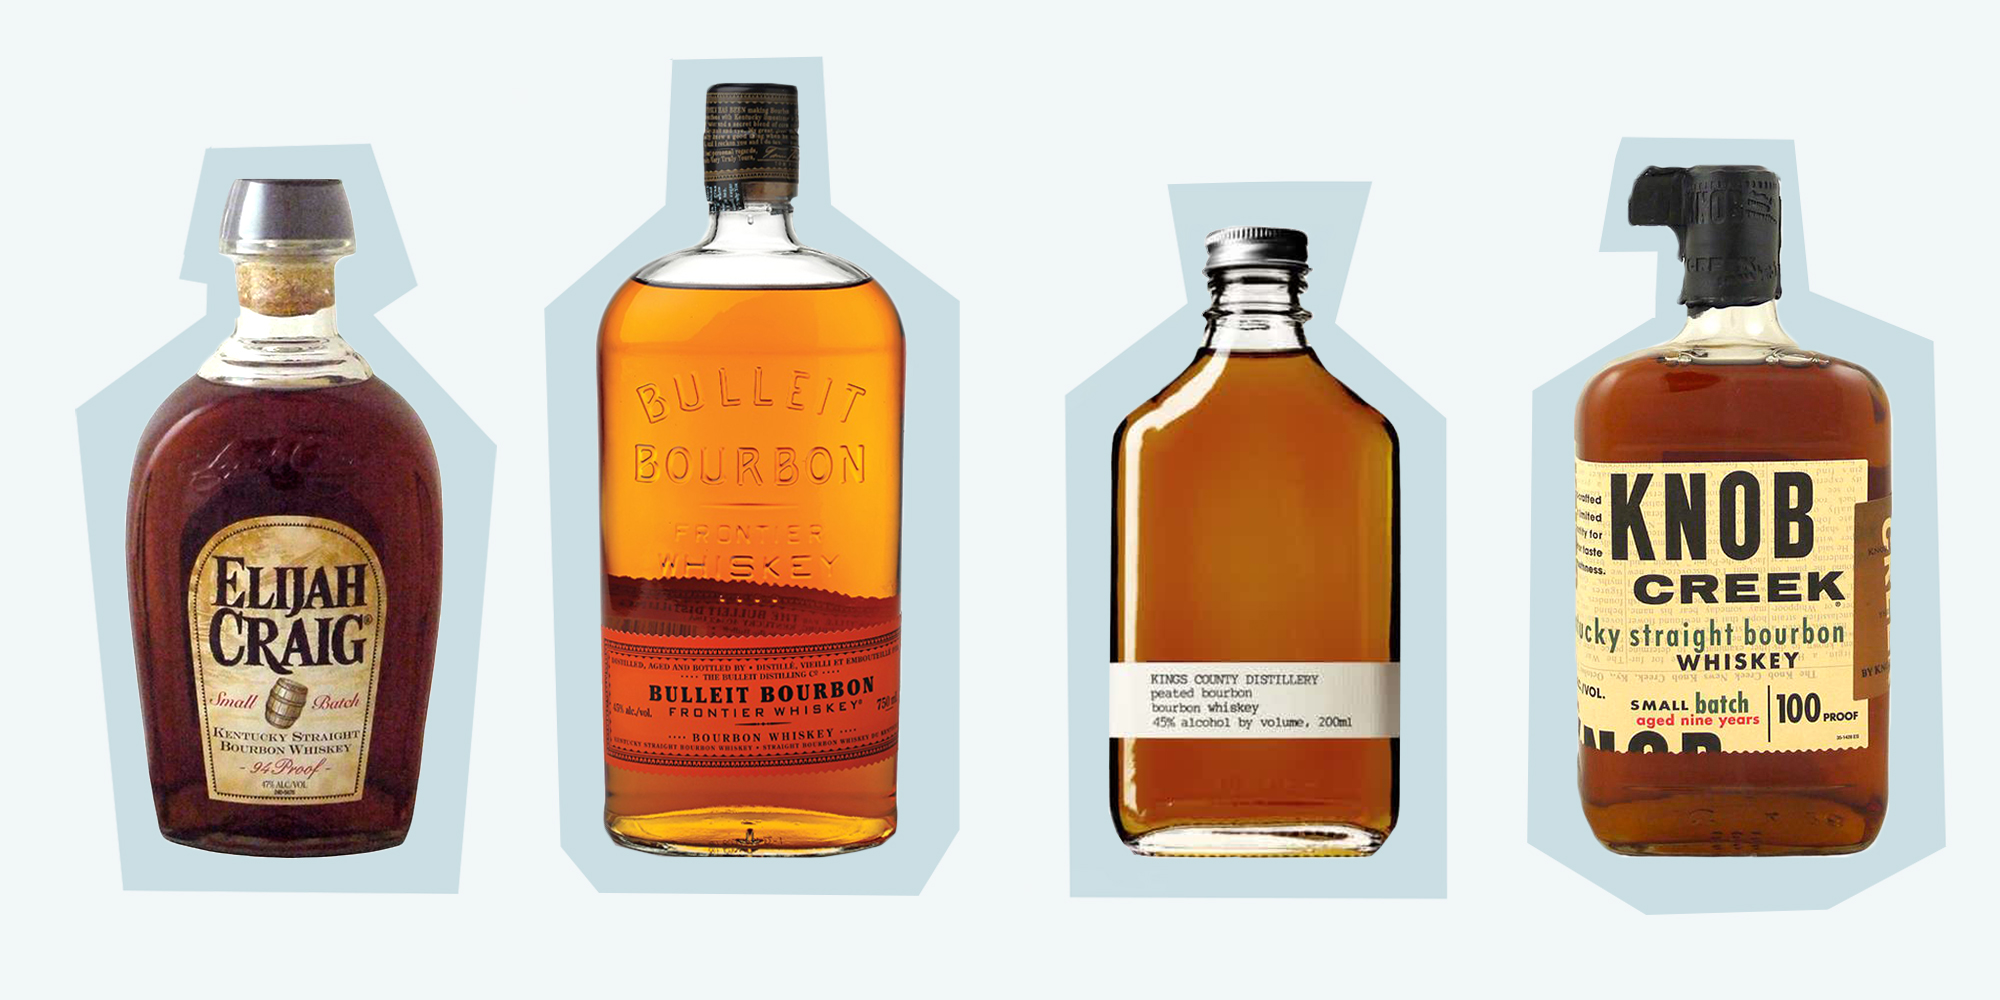 11 Best Bourbons of Fall 2017 - Reviews of Bourbon Whiskey